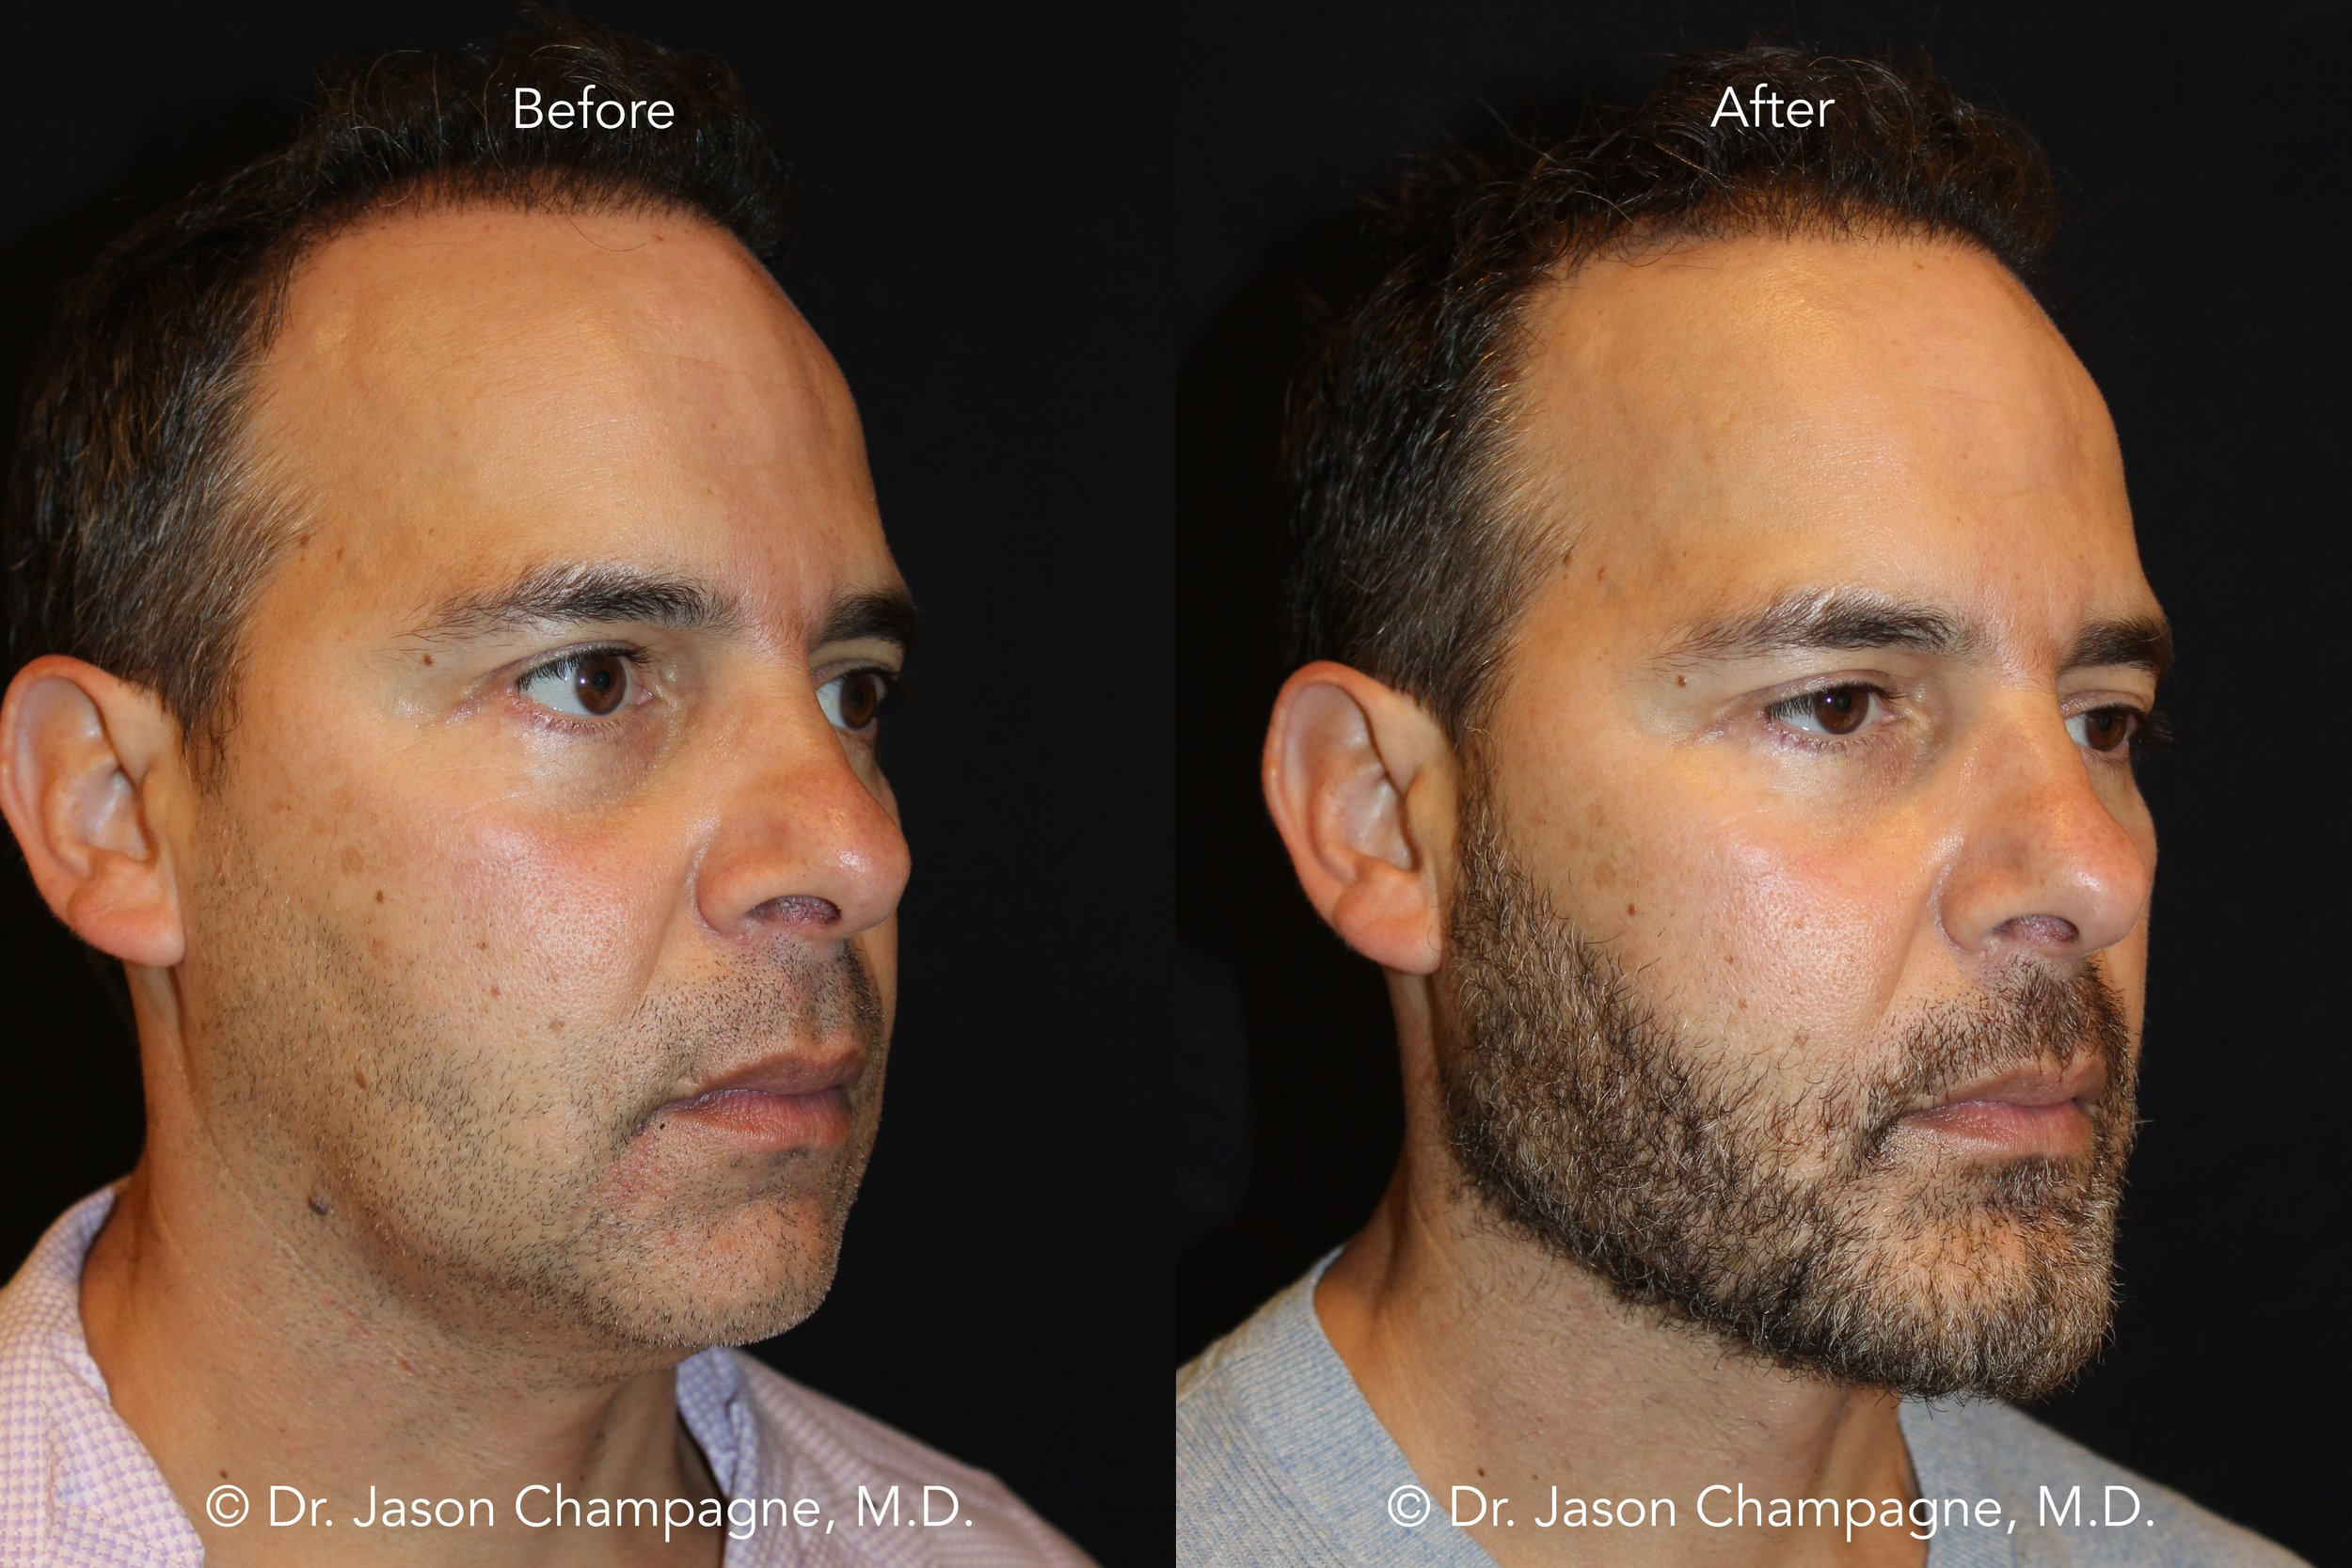 Dr-Jason-Champagne-Facial-Plastic-Surgery-Beverly-Hills-Fat-Transfer-and-Custom-Chin-and-Jaw-RFAL-Before-and-After-1